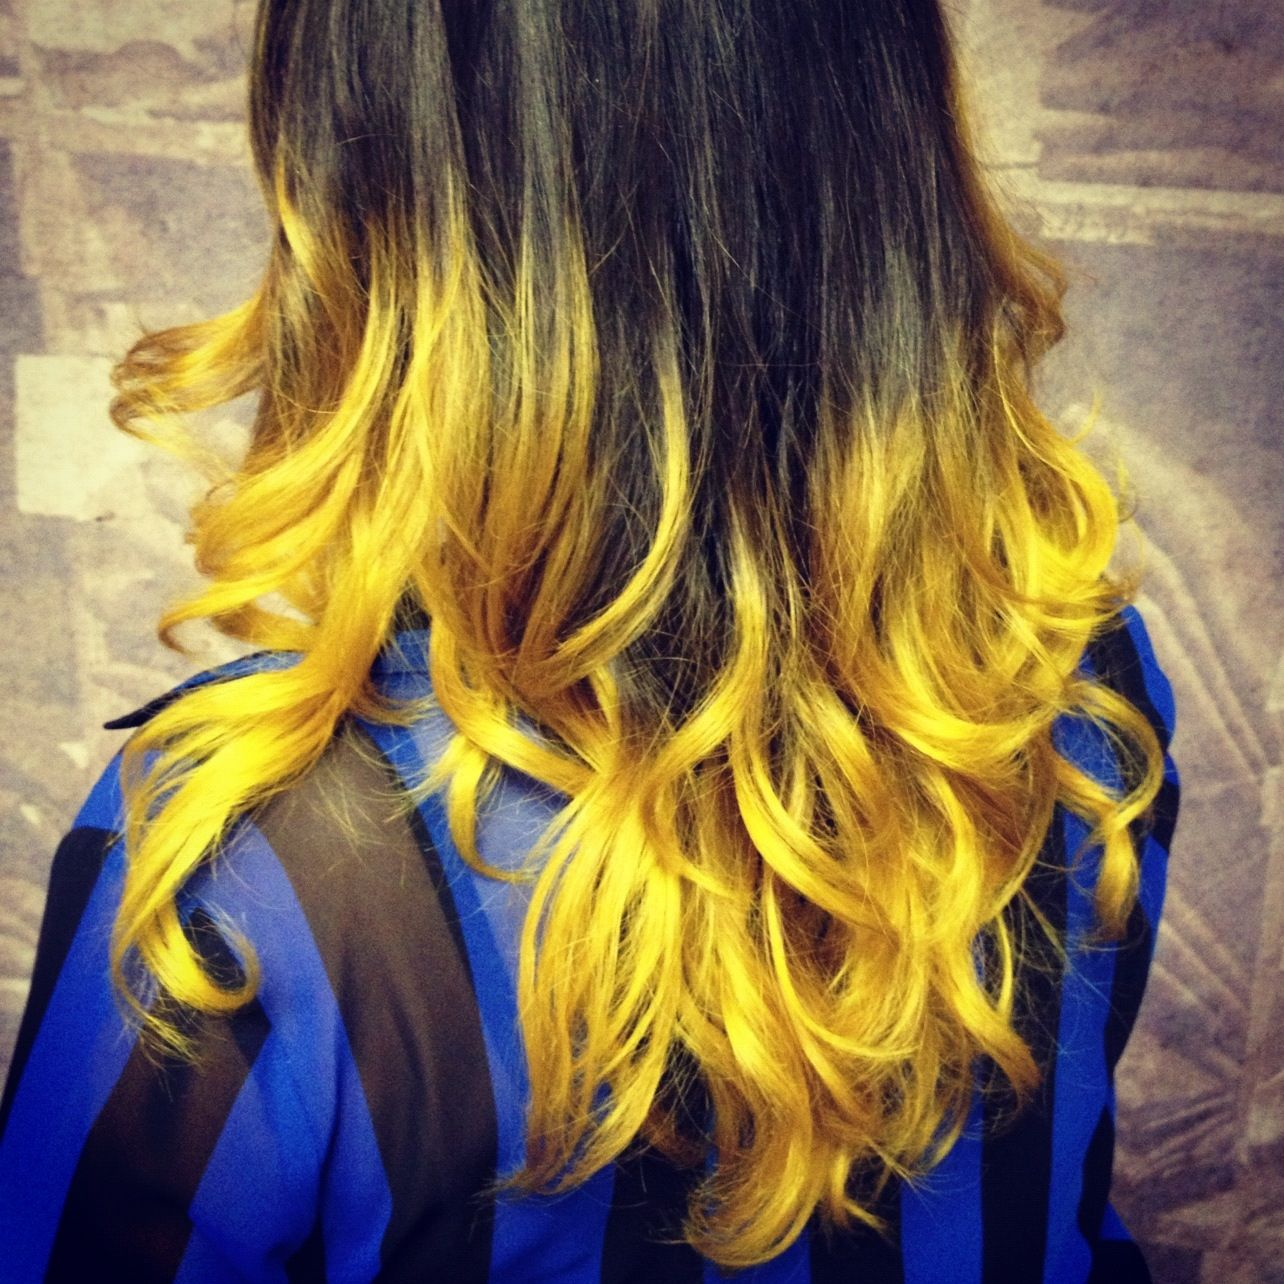 yellow ombre hair stripes fall | Hair | Pinterest | Ombre